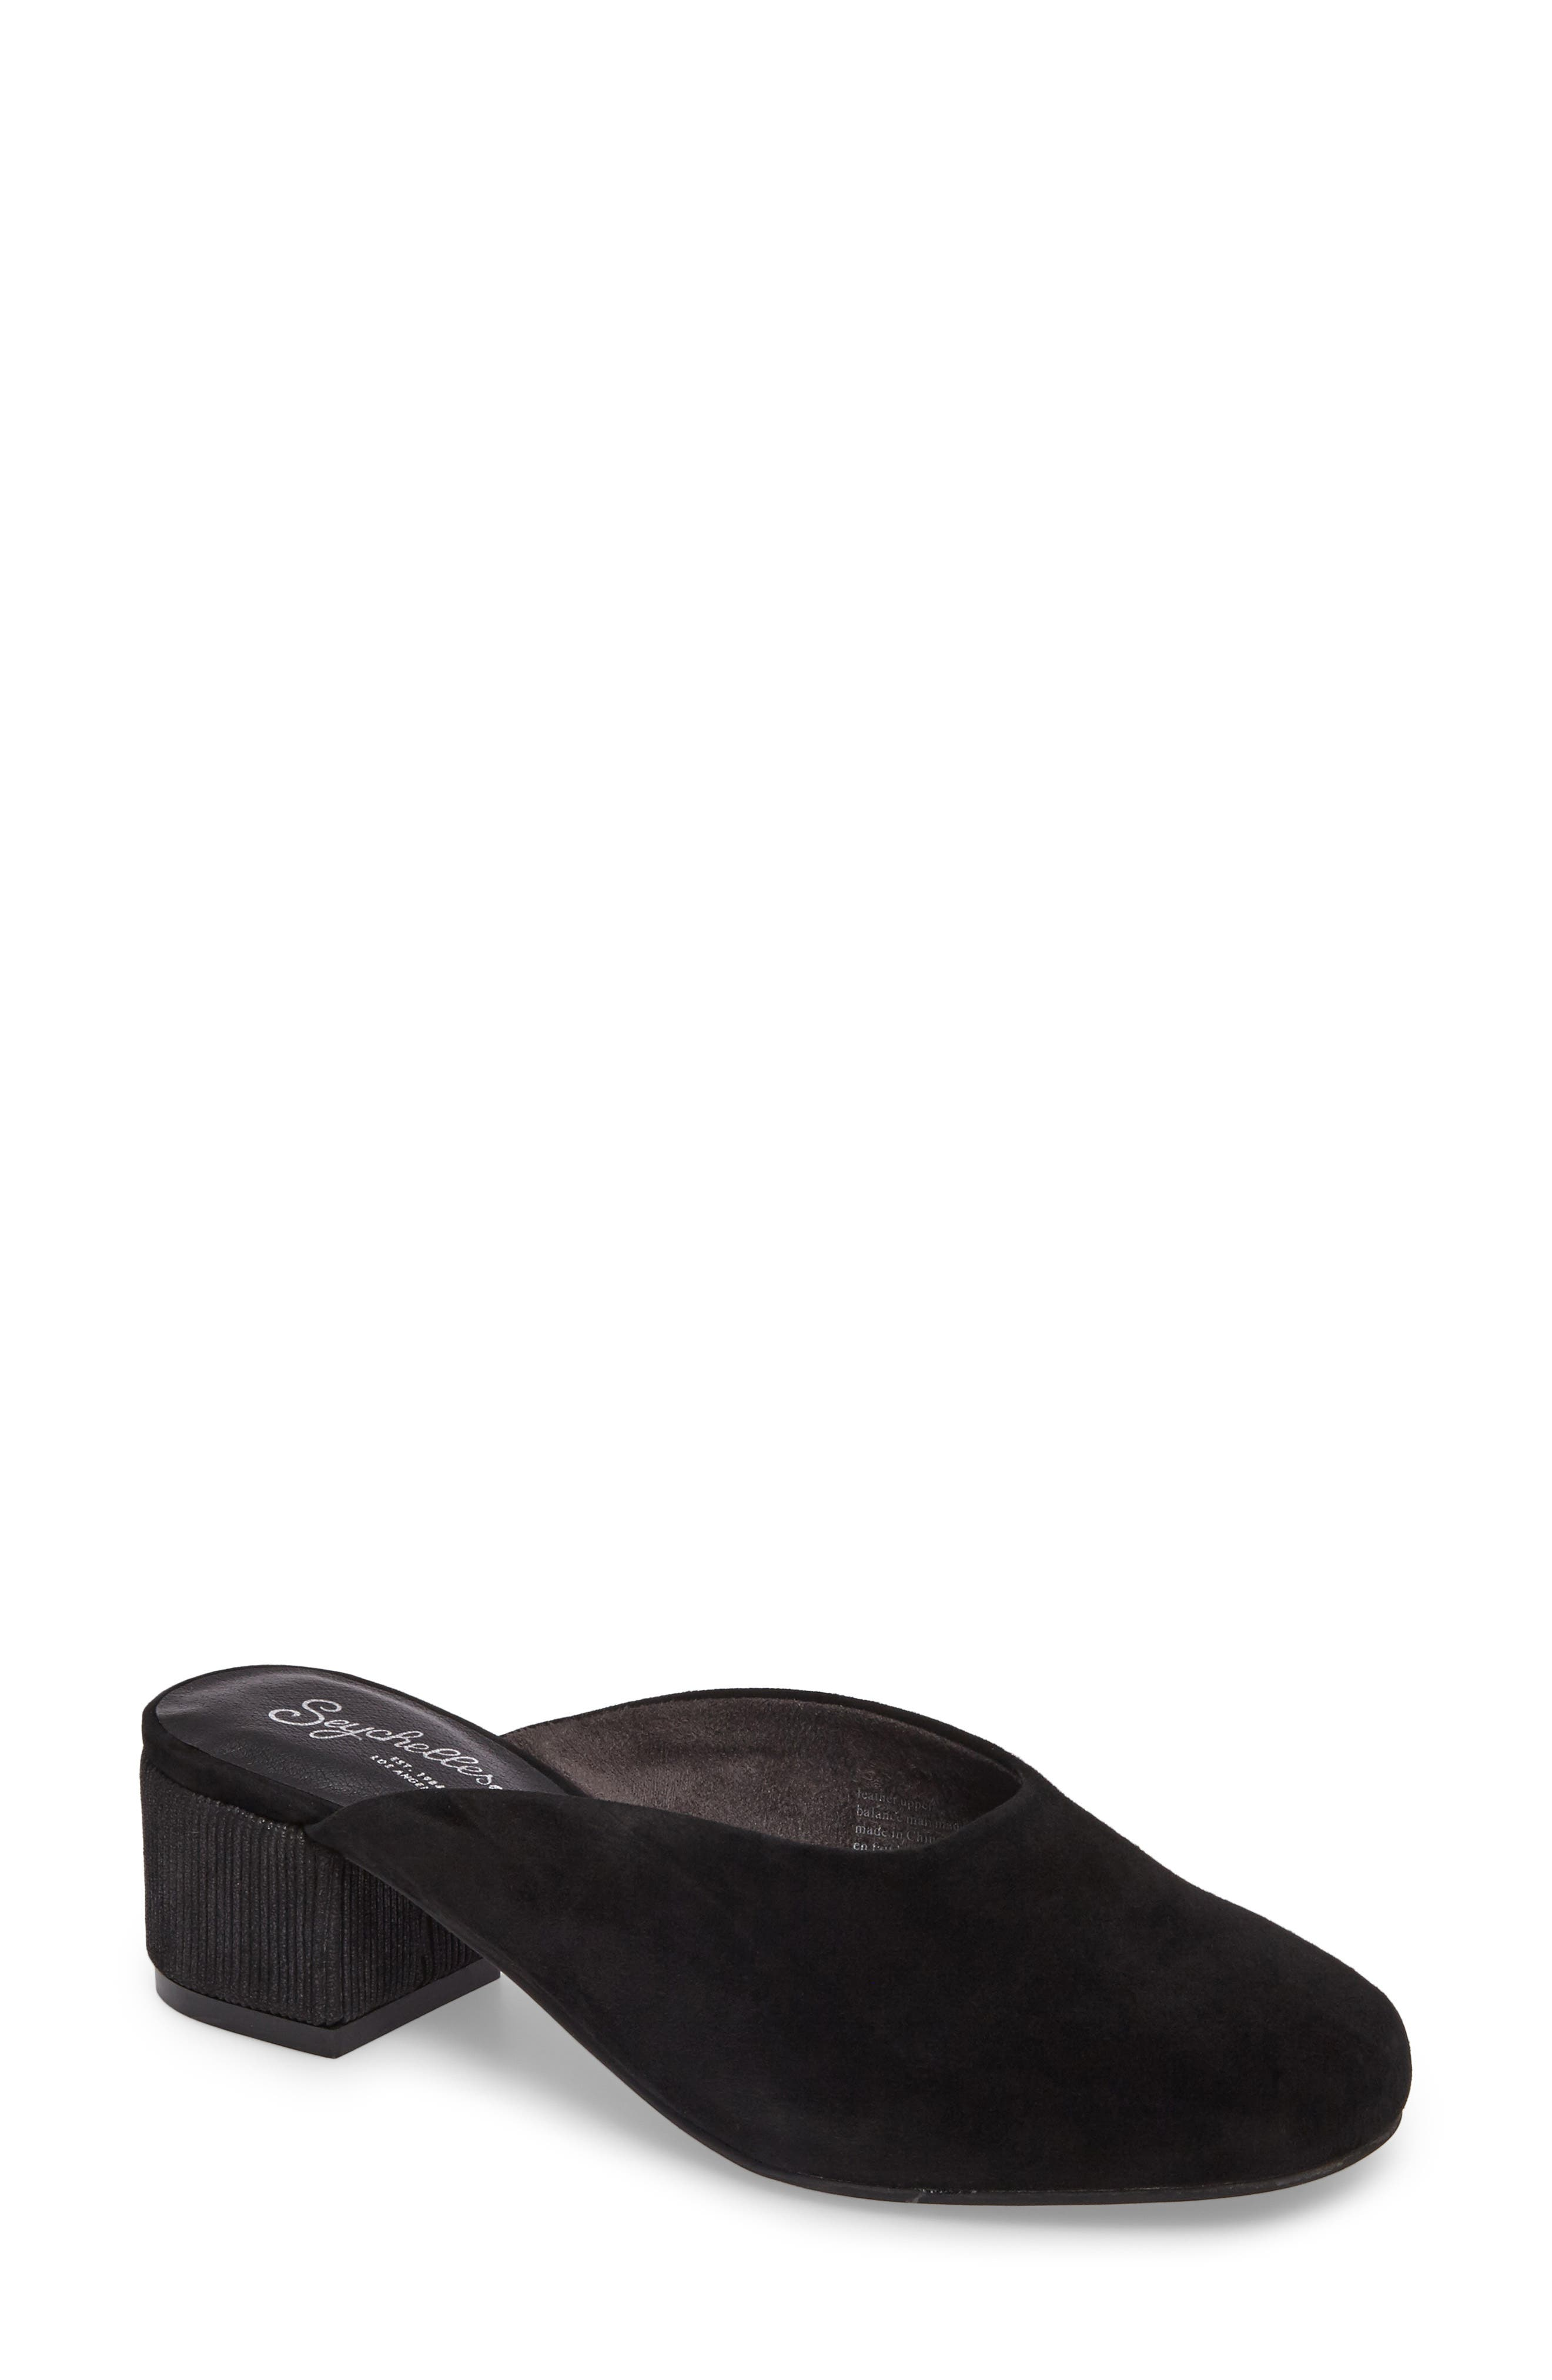 Chorus Mule,                         Main,                         color, Black Suede